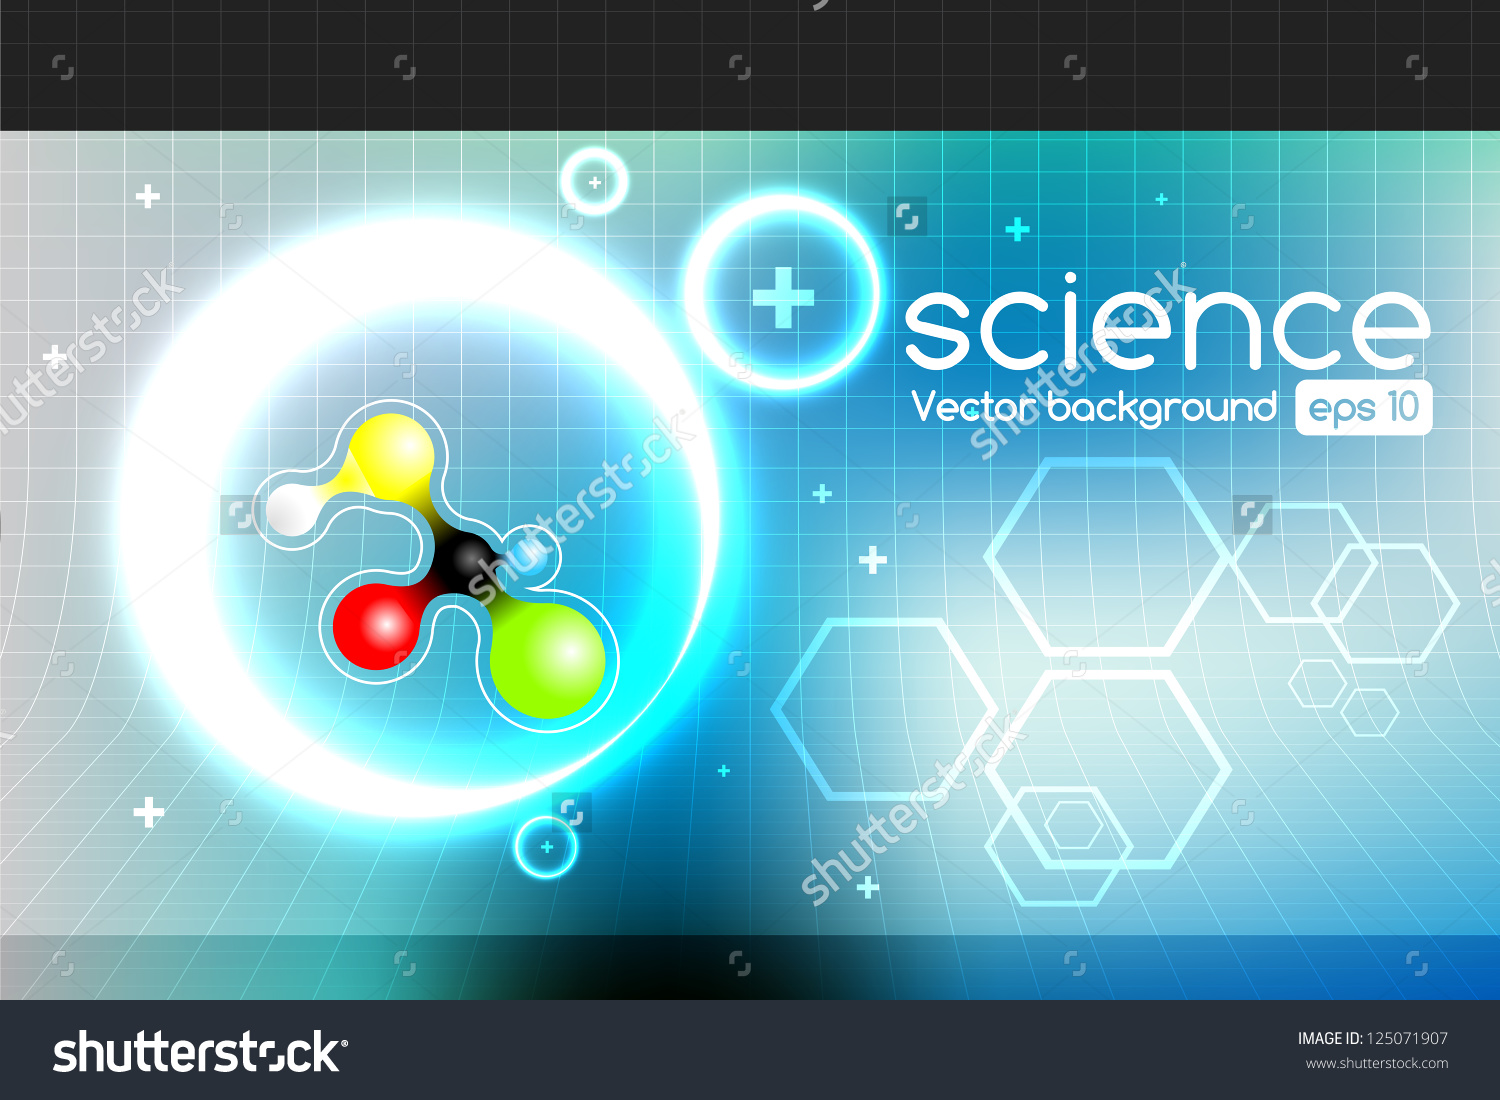 Download Science And Technology Wallpaper Gallery